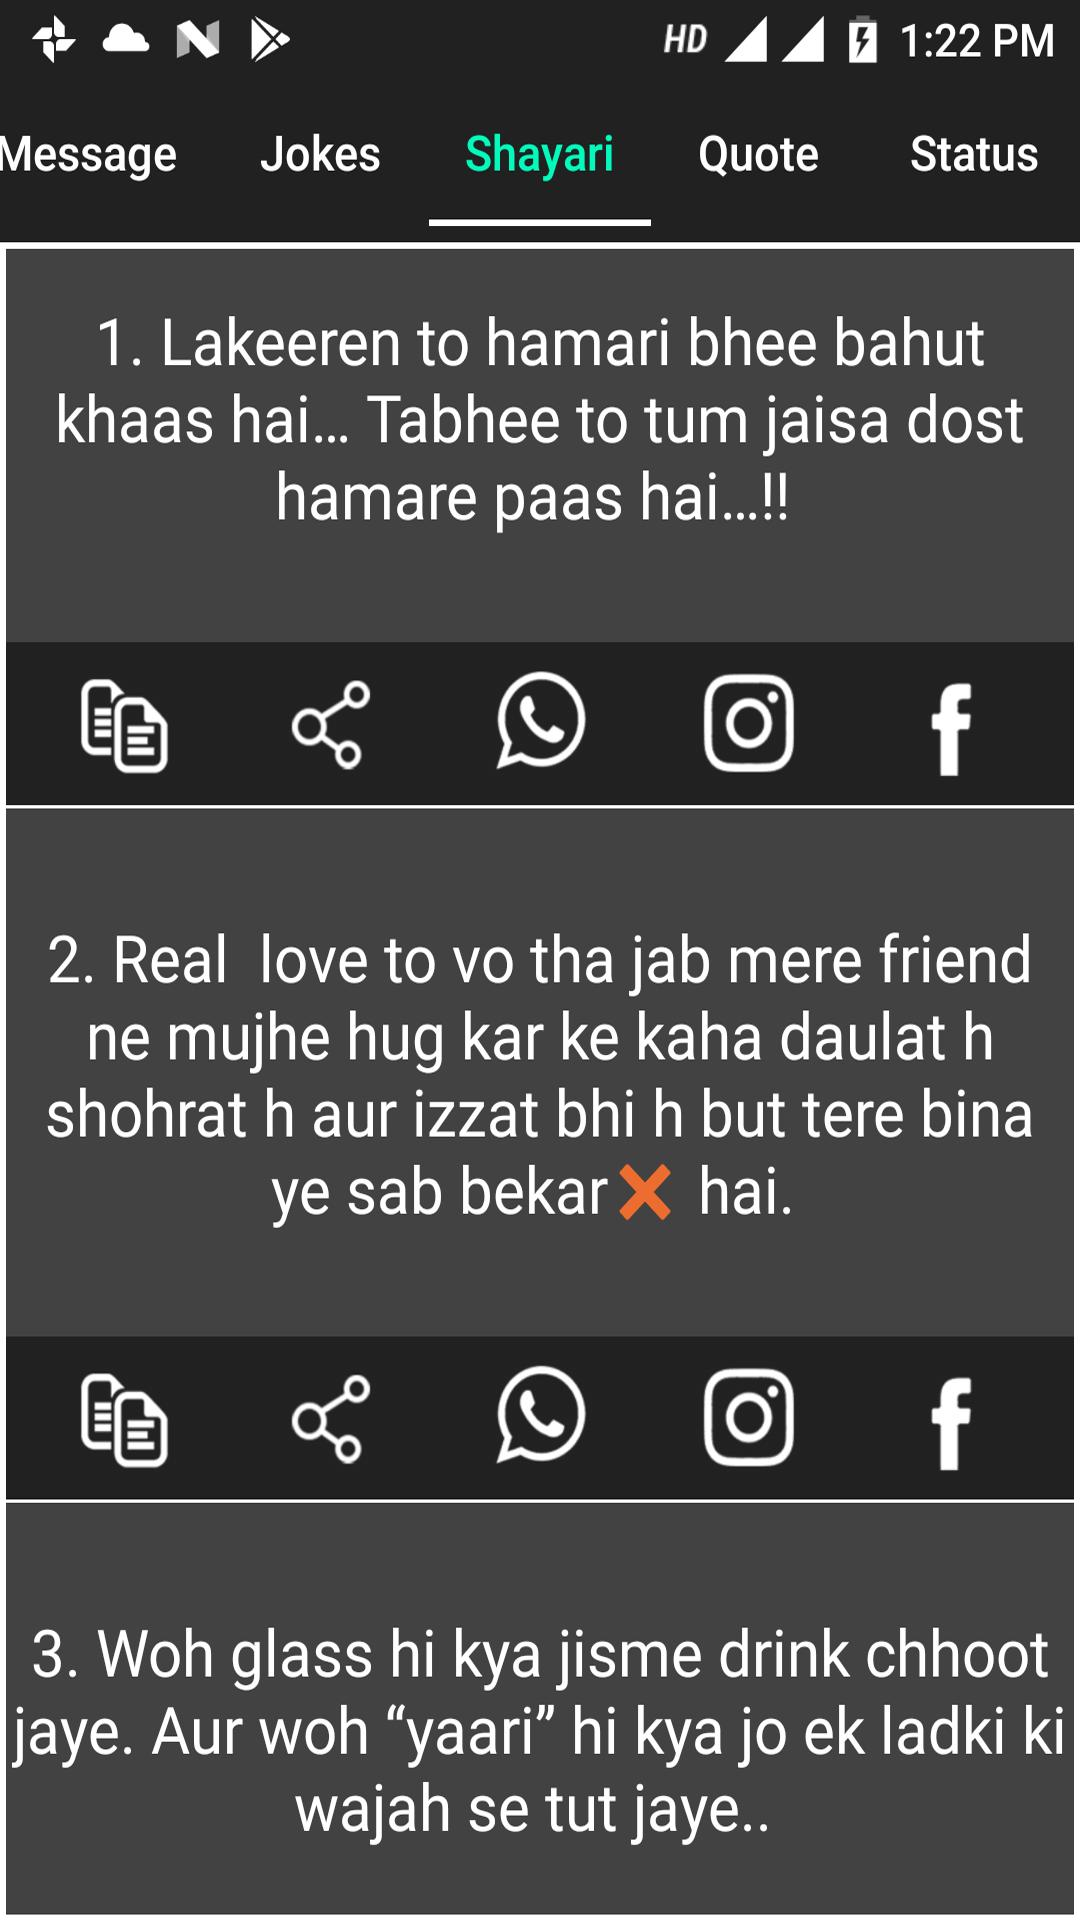 Friendship Joke Sms Wallpaper For Android Apk Download